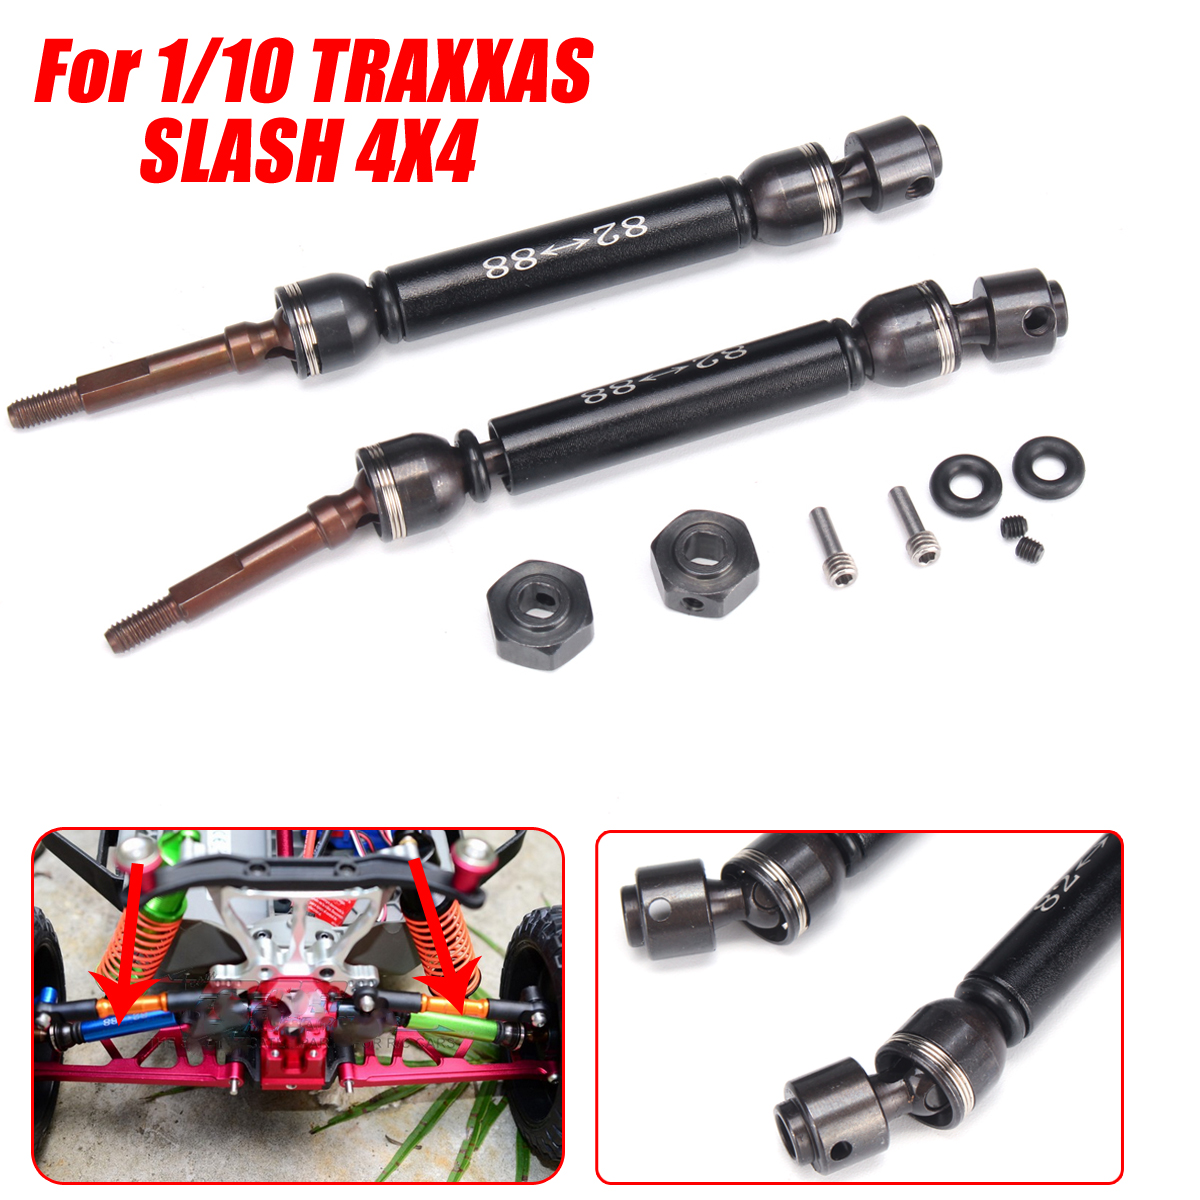 2Pcs RC Car CVD Rear Drive Shaft for Traxxas 1/10 Slash 4x4 Remote Control Car Aluminum Alloy Upgrade Part стоимость